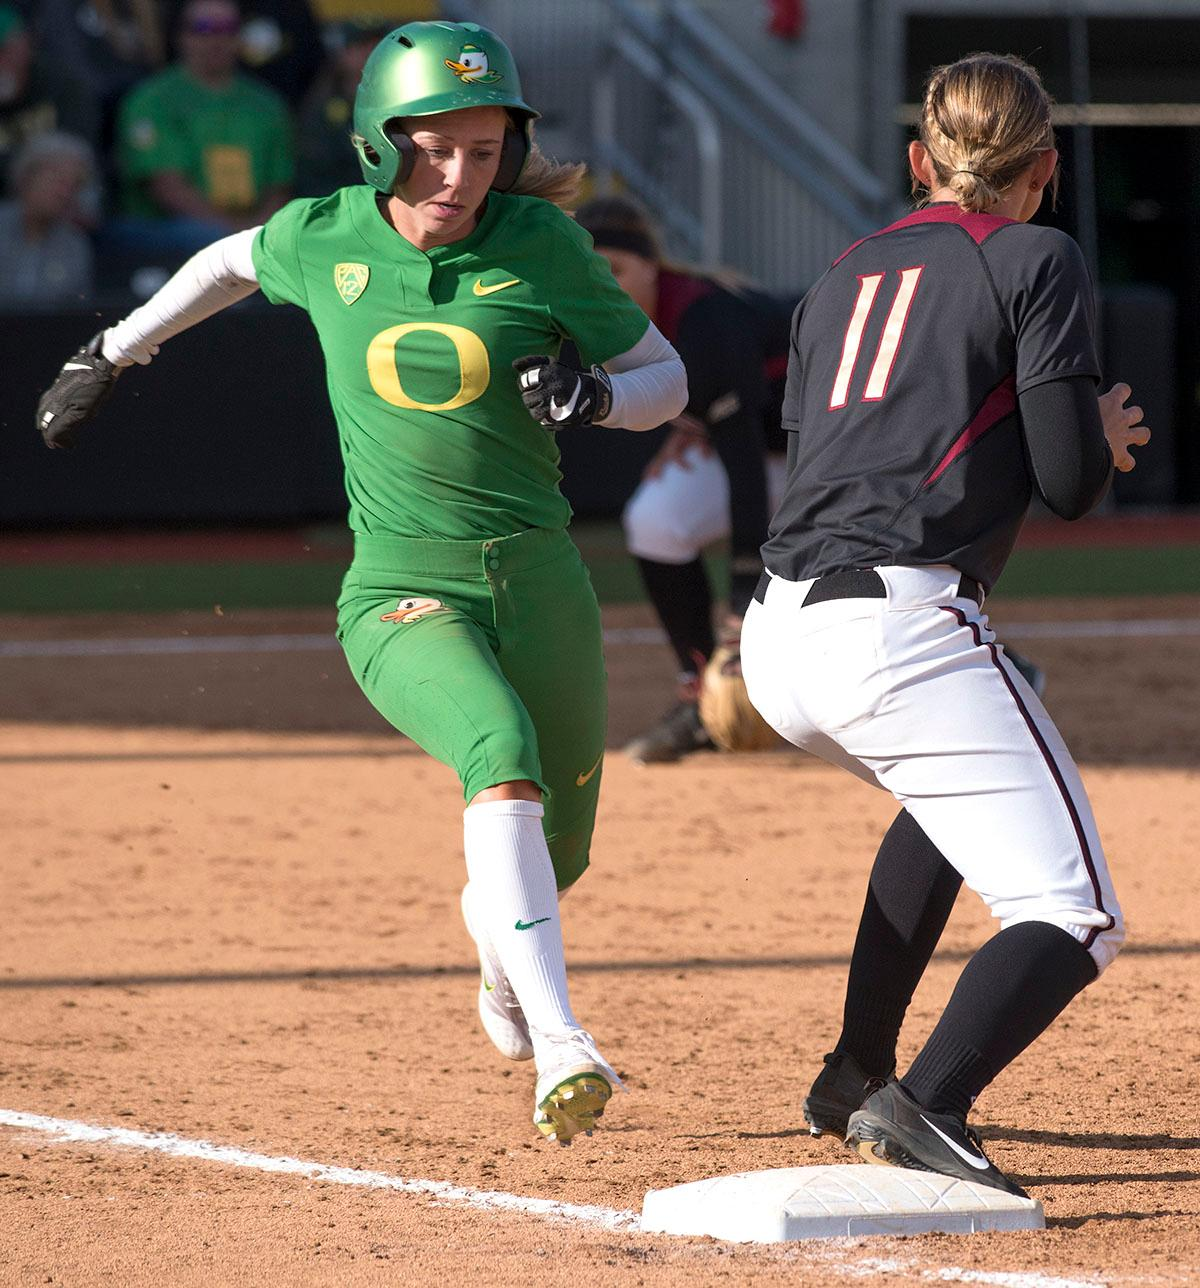 Oregon Ducks left fielder Alexis Mack (#10) runs to first base. The No. 5 Oregon Ducks defeated the No. 2 Florida State Seminoles in both games of the doubleheader (11-0, 3-1) on Saturday afternoon. This sweep of the first two rounds of the postseason happened in front of a soldout crowd of 2,517 at Jane Sanders Stadium. Photo by Cheyenne Thorpe, Oregon News Lab